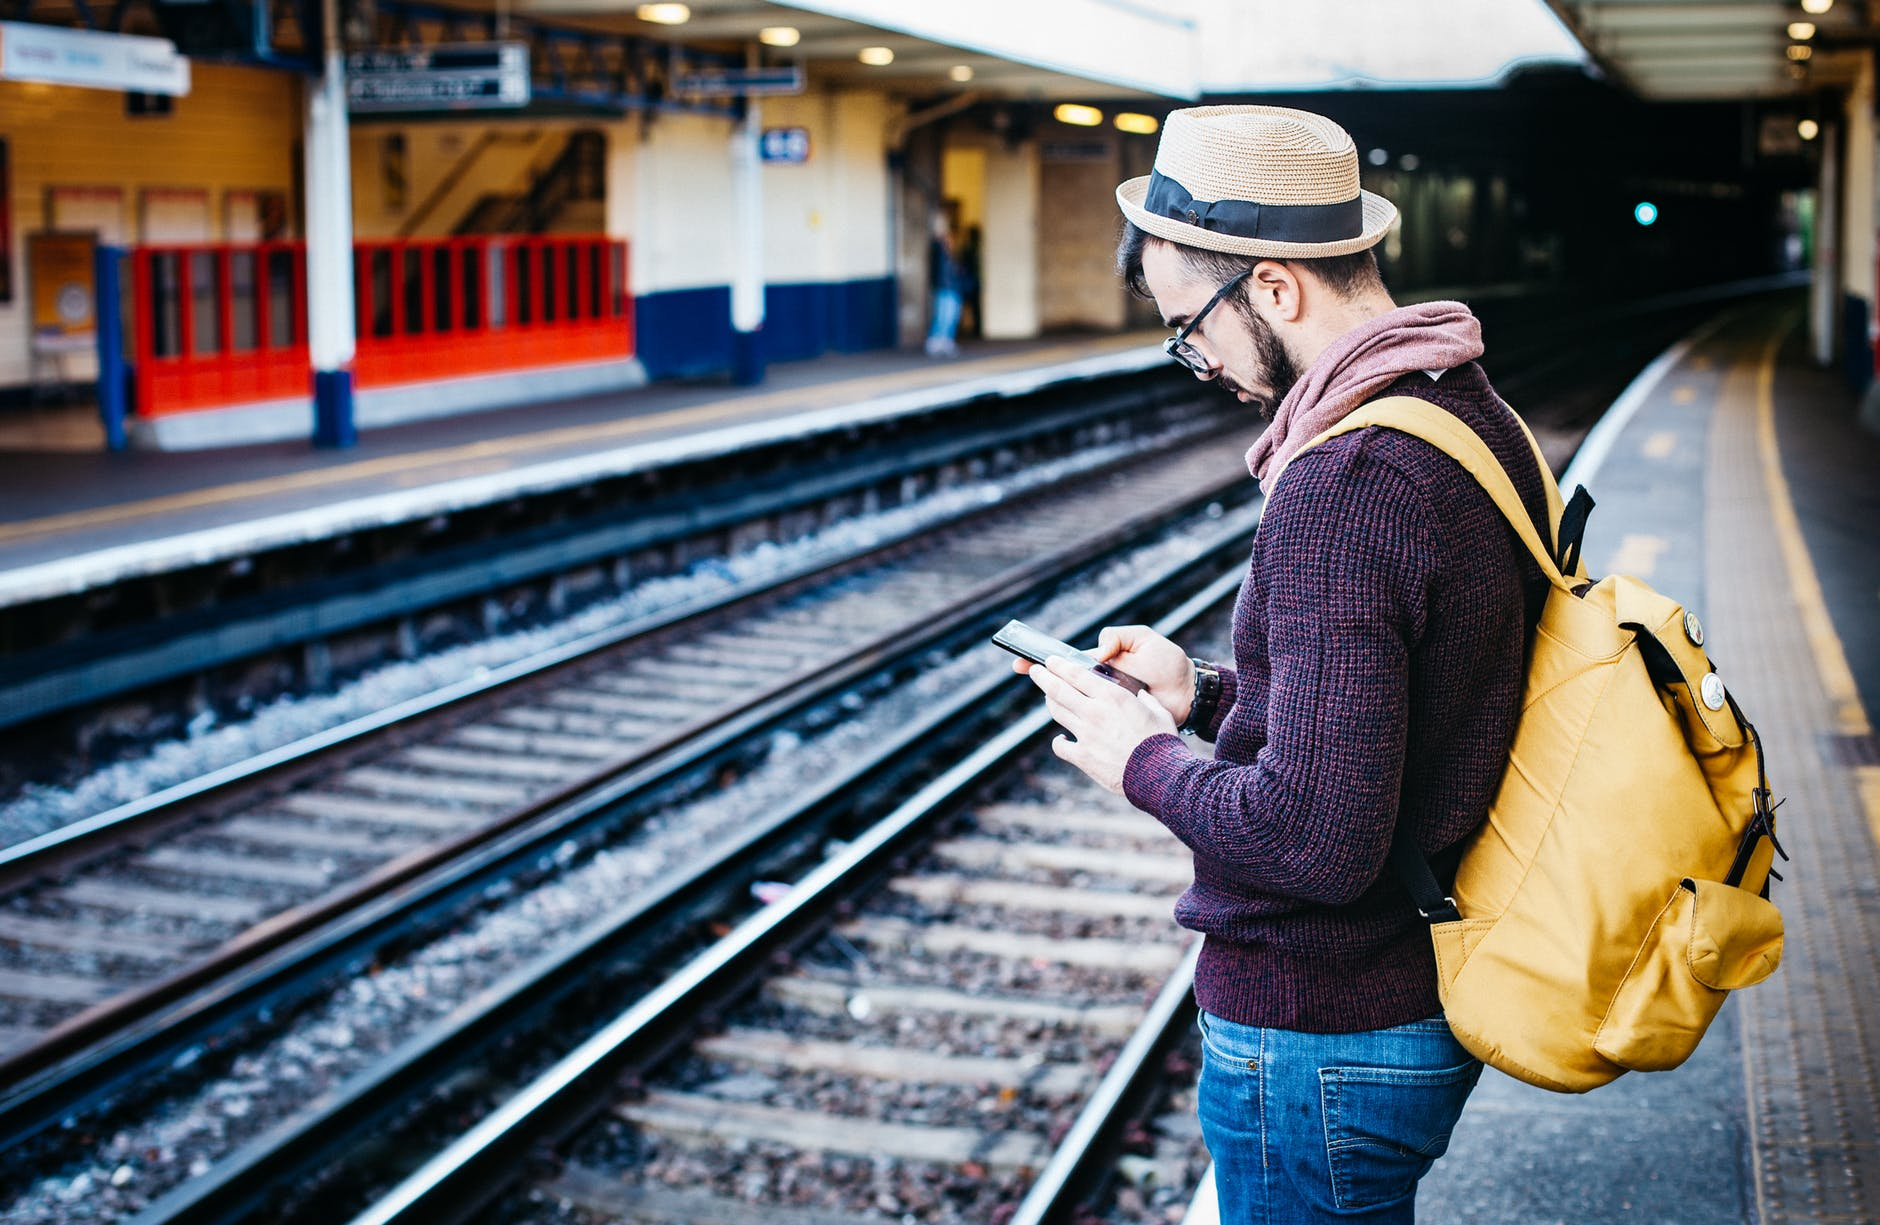 man looking at his phone on a train platform